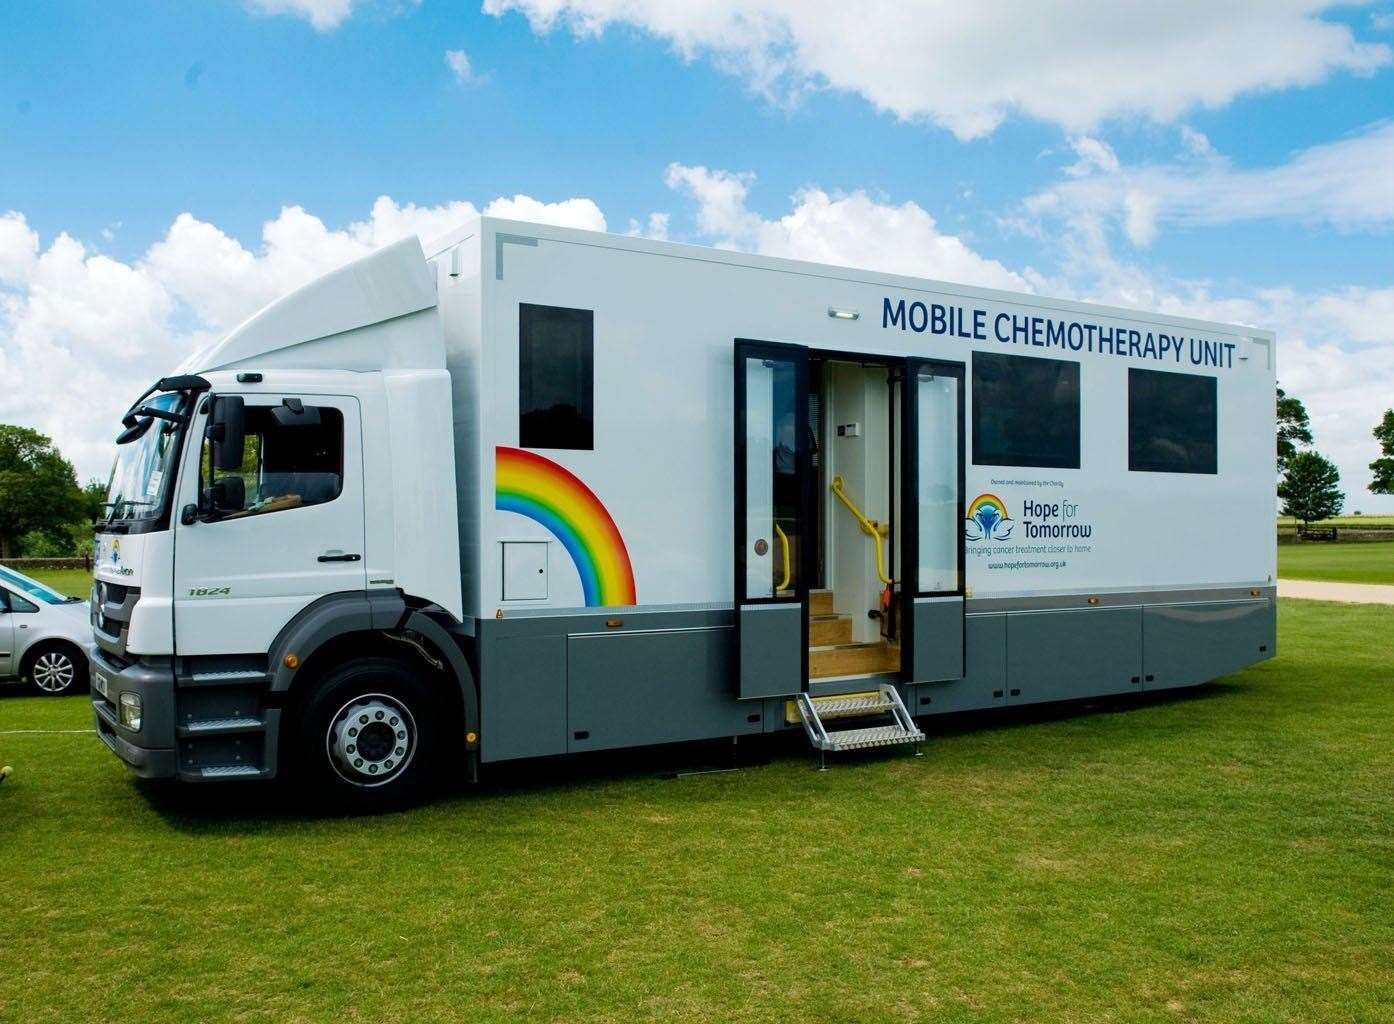 The Suffolk Mobile Chemotherapy Unit operated by the Hope for Tomorrow charity.